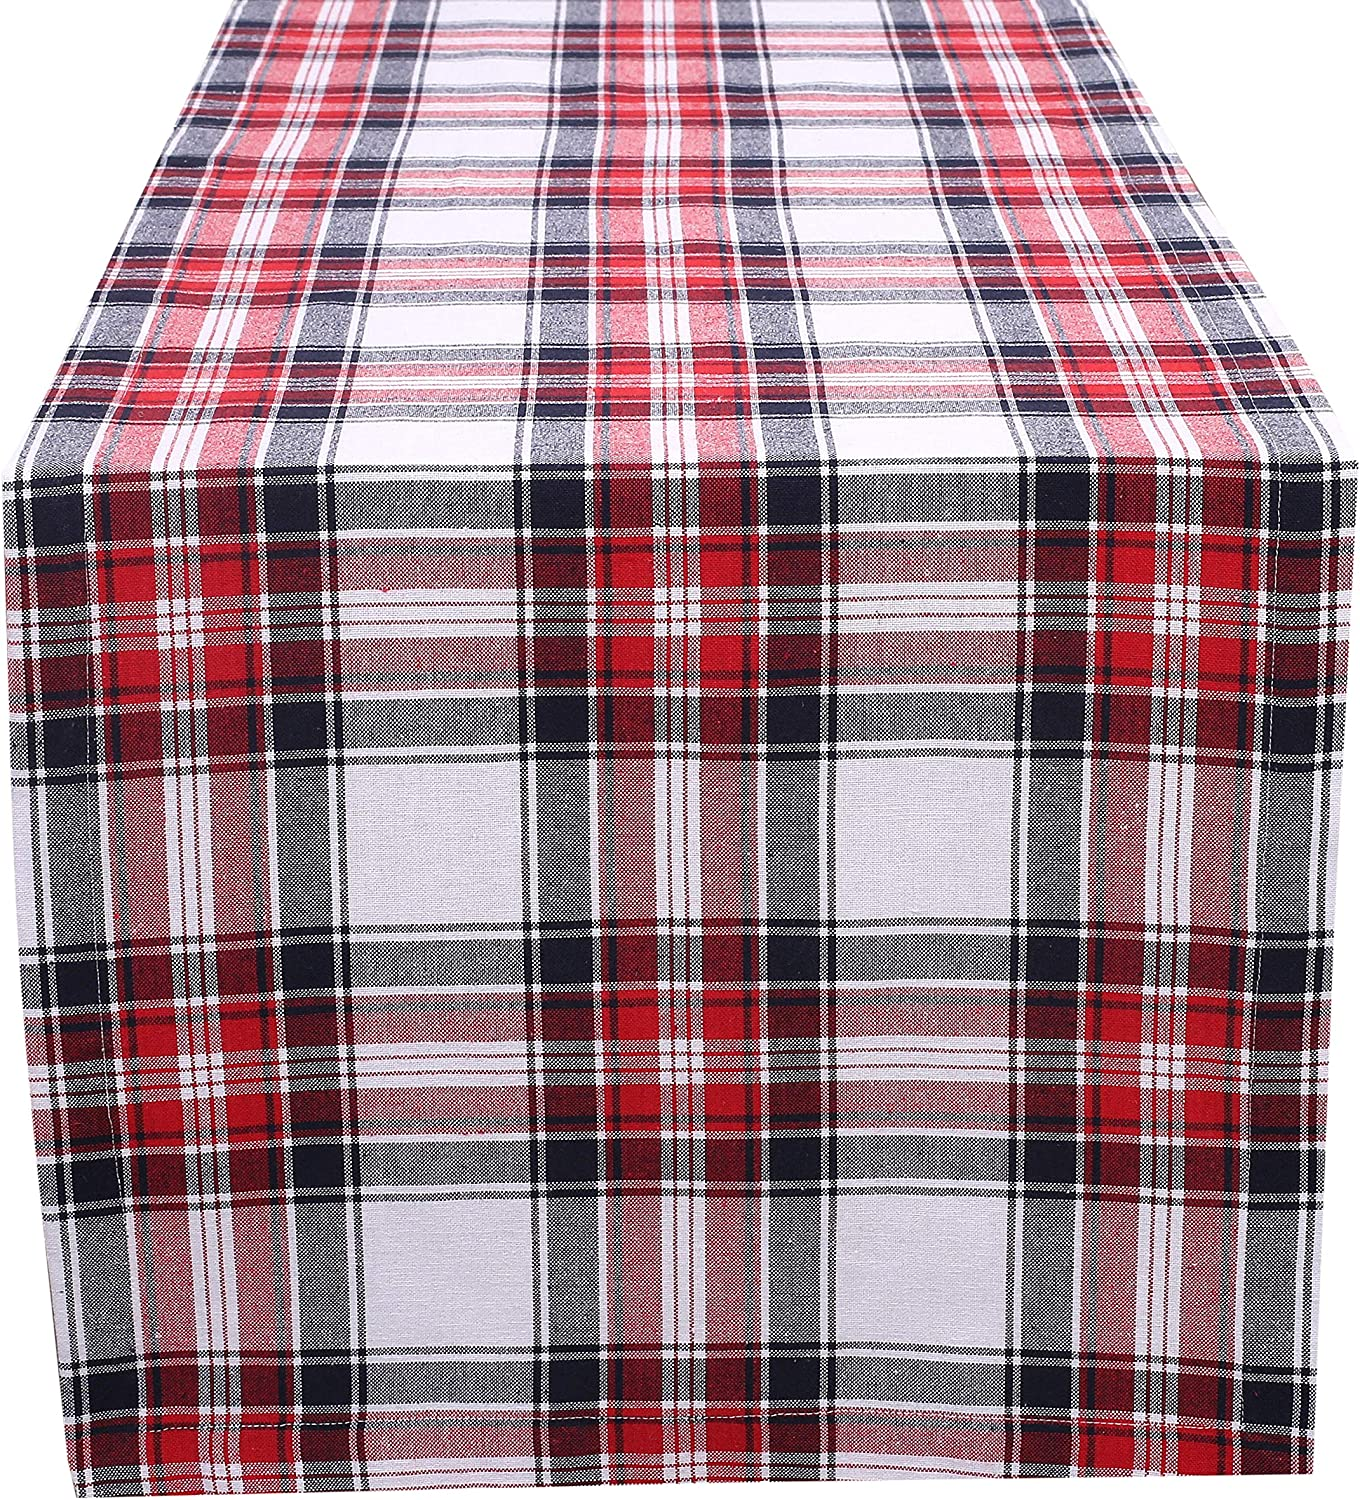 100 Cotton Classic Check Plaid Table Runner 16 X108 With Mitered Corners Generous Hem Teal Amazon Ca Home Kitchen